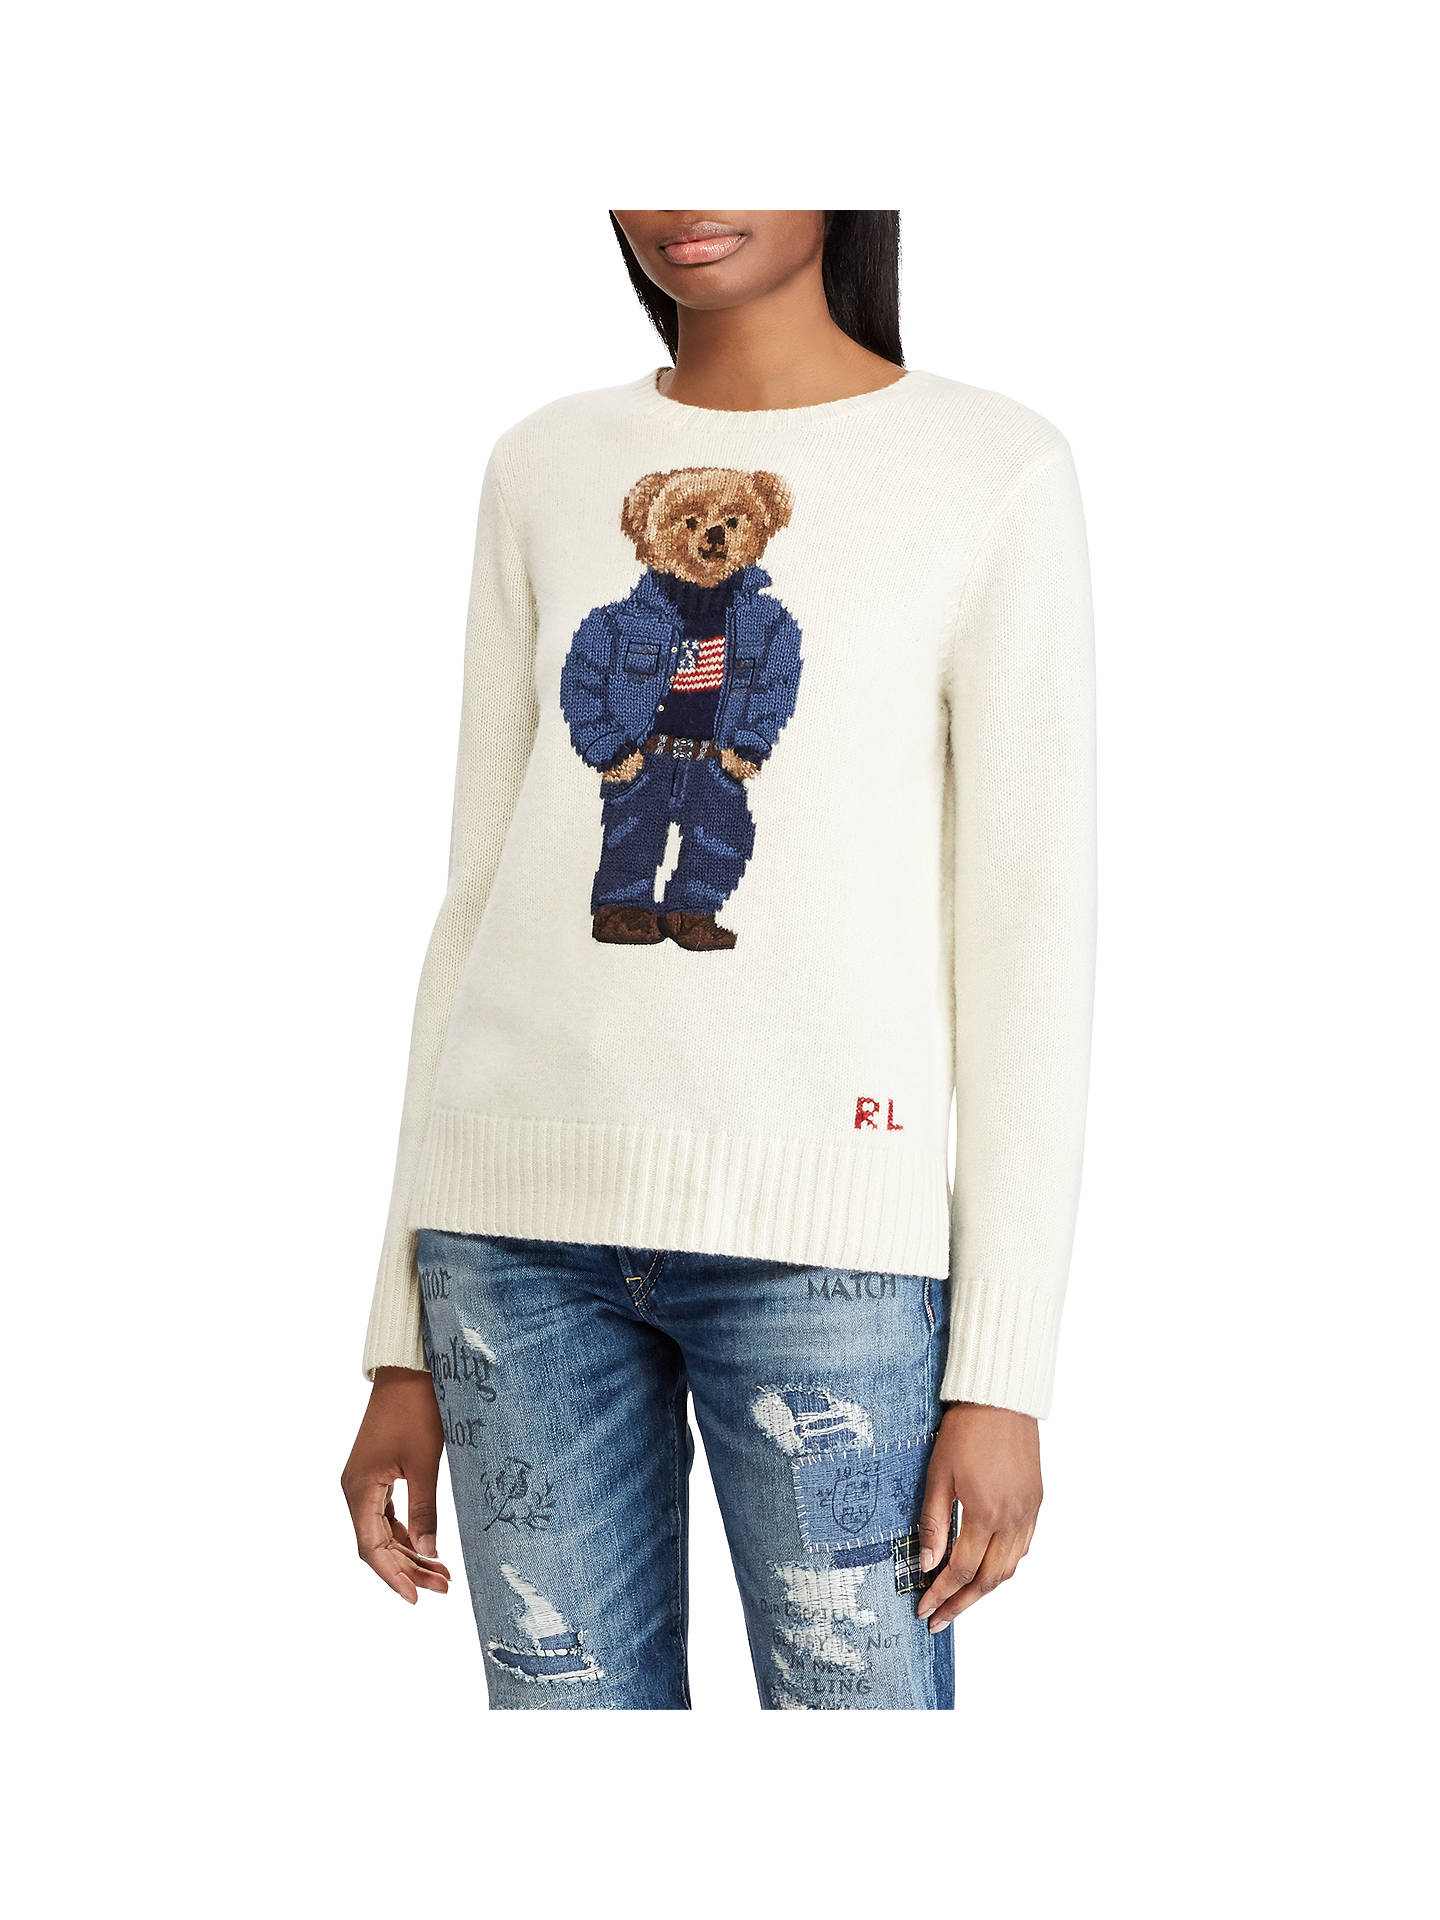 Ralph Bear John JumperCream Partners Polo Lewisamp; Lauren At UpMVqSz